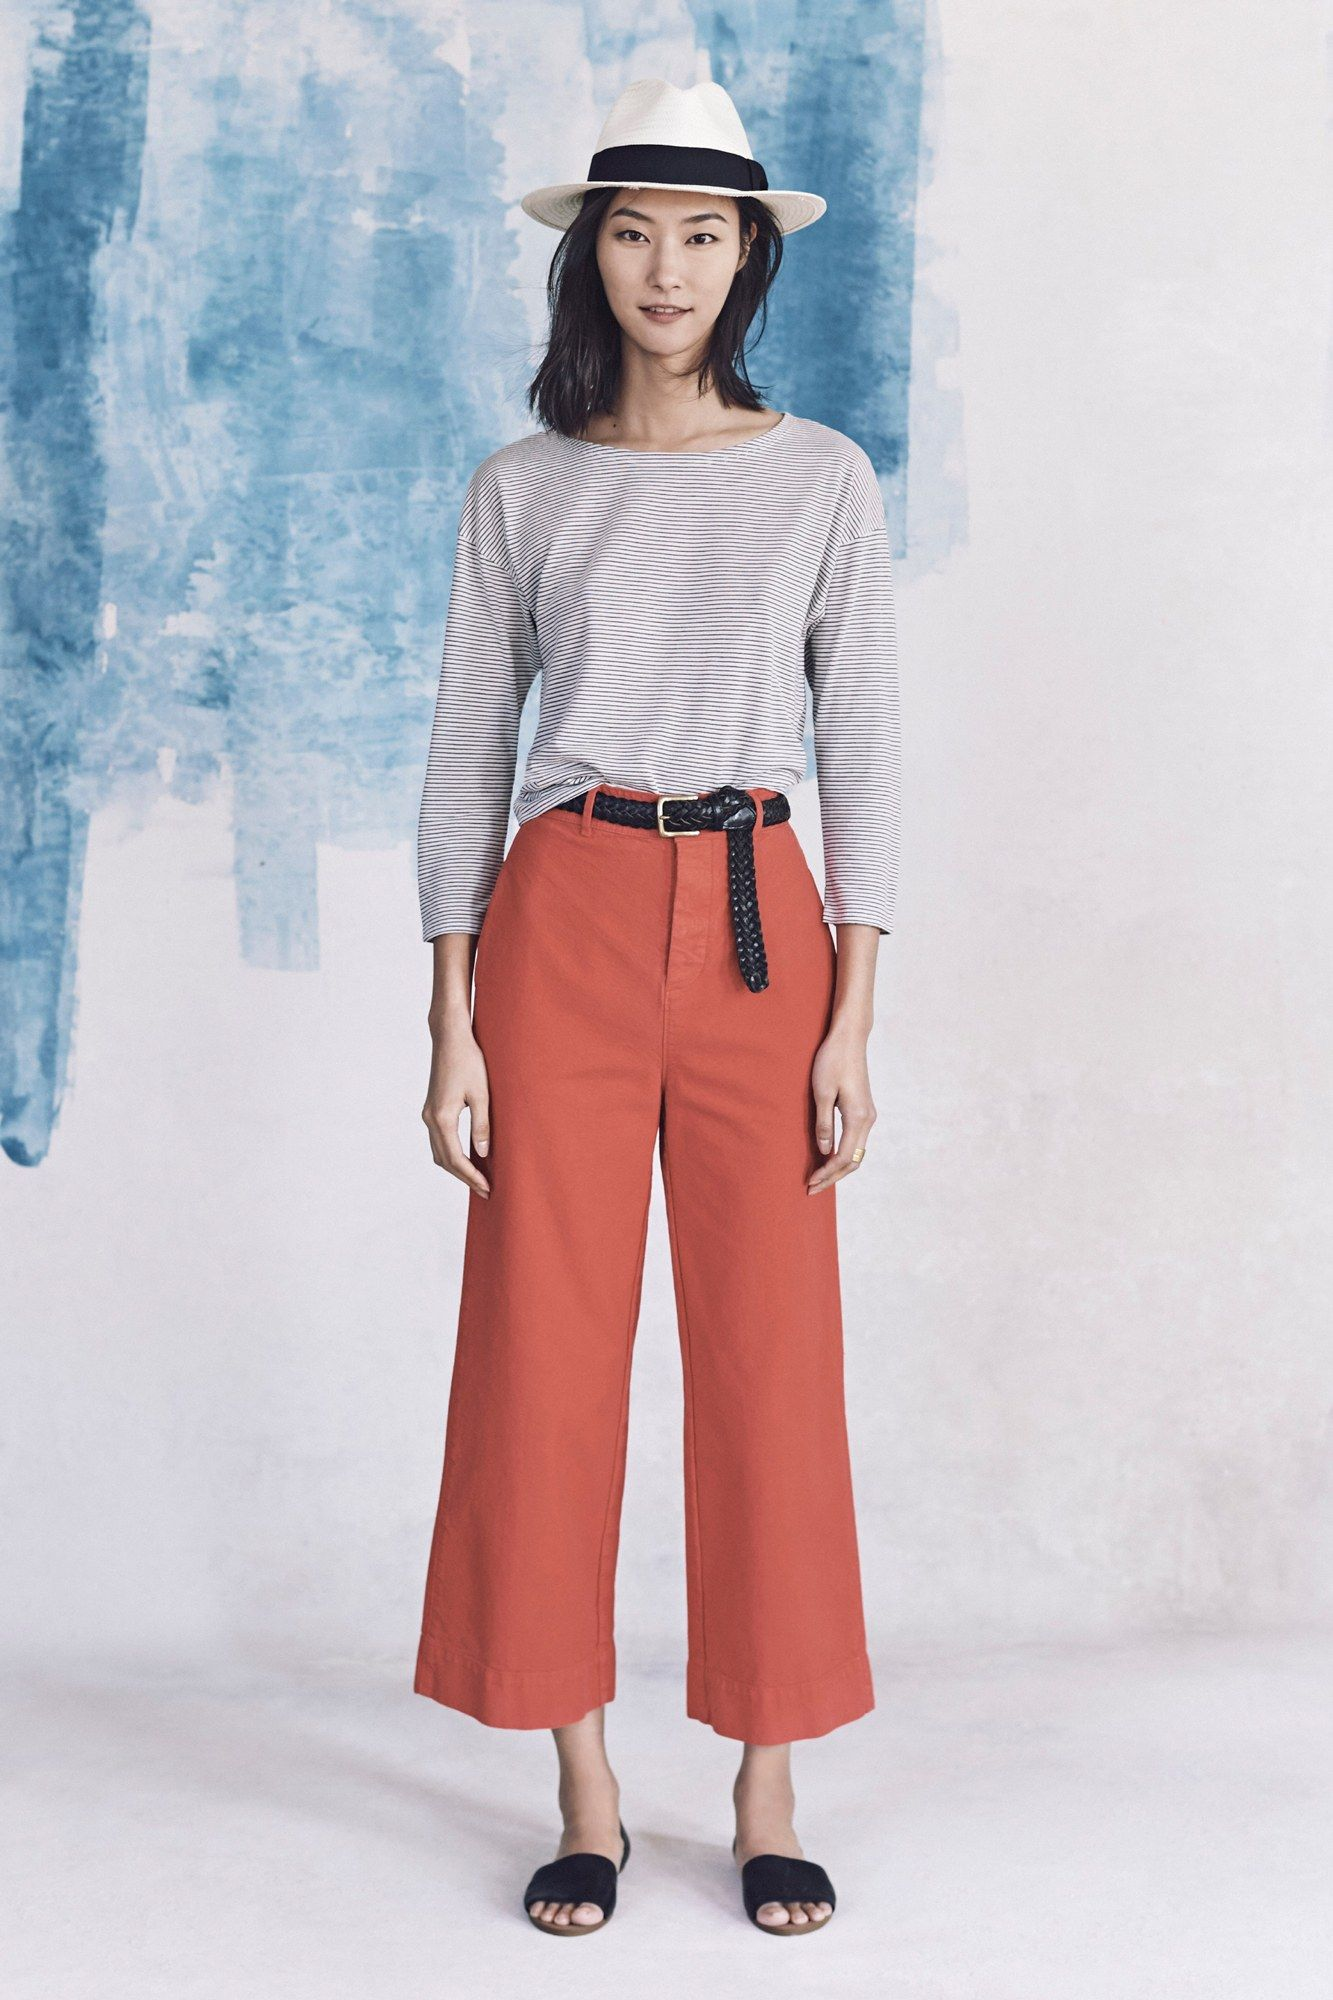 77aece678498f Madewell Spring 2016 Ready-to-Wear Collection Photos - Vogue